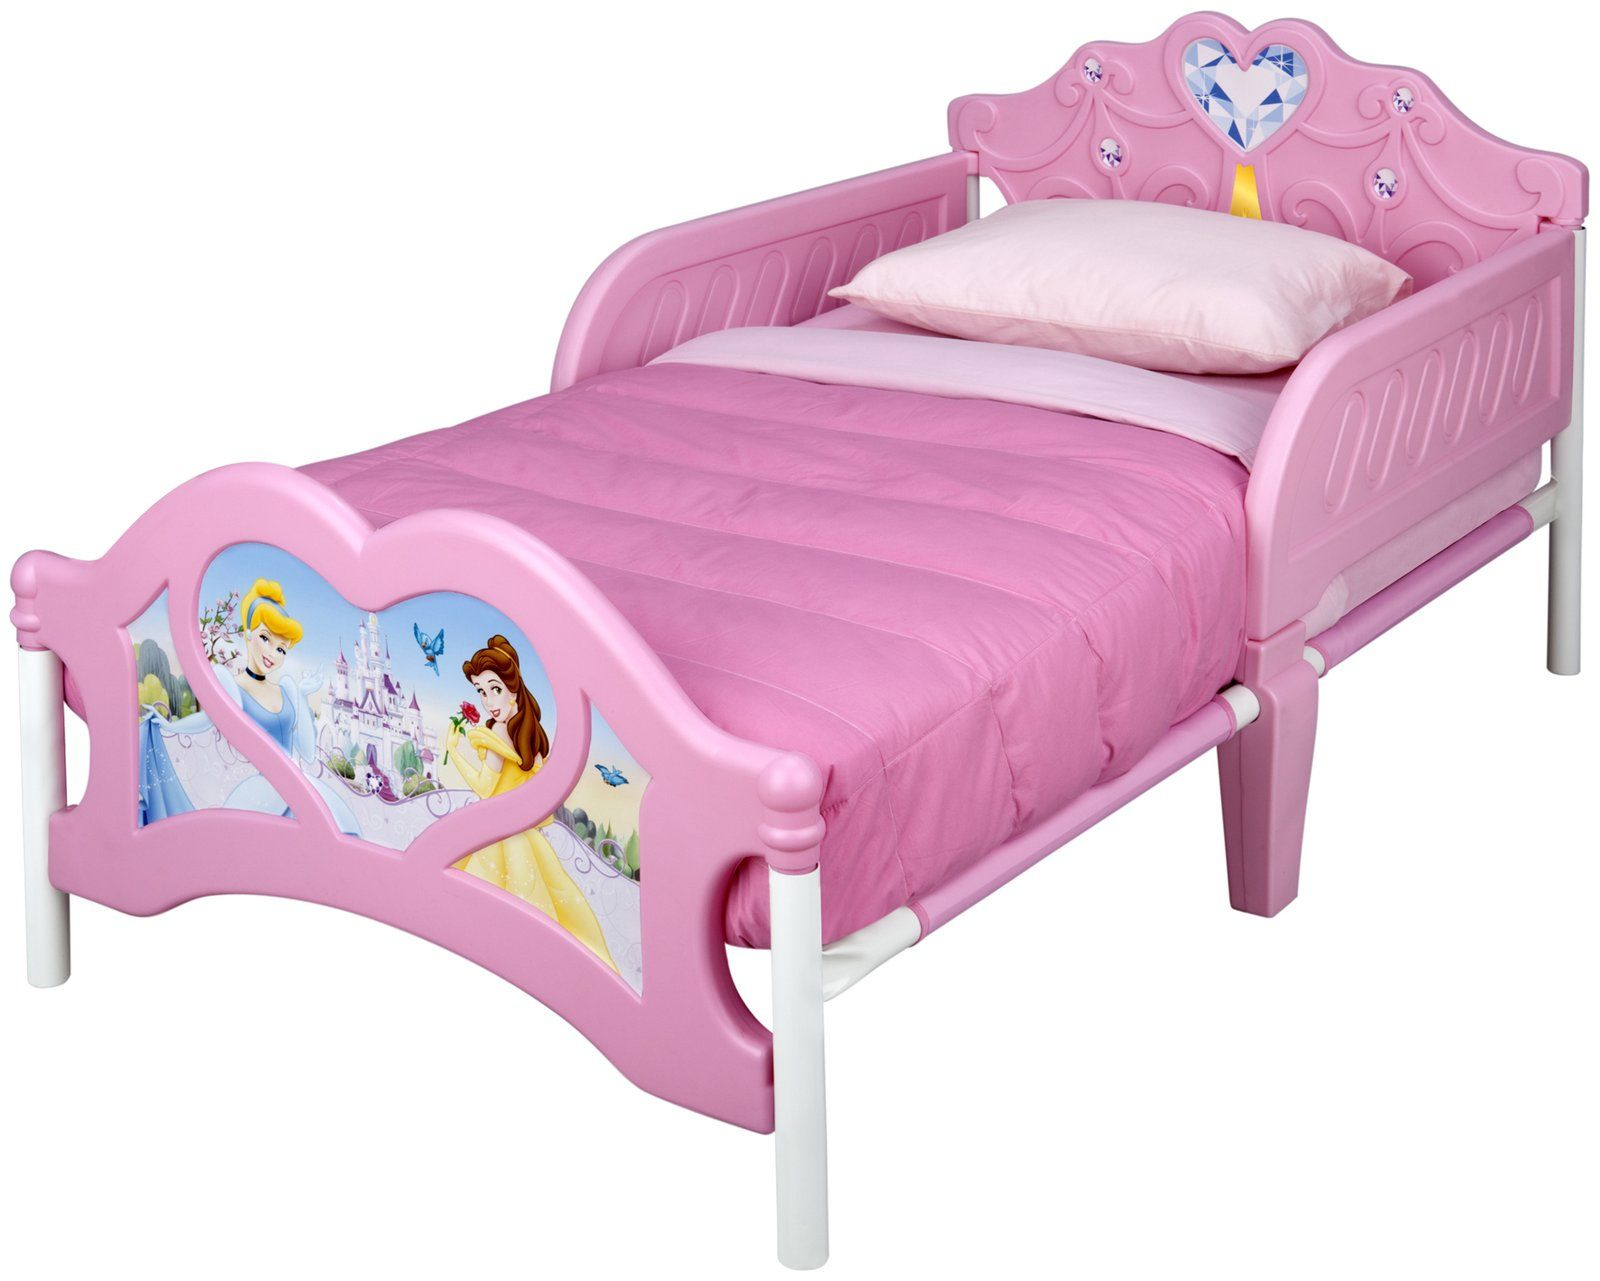 70+ Disney Princess toddler Bed with Canopy assembly